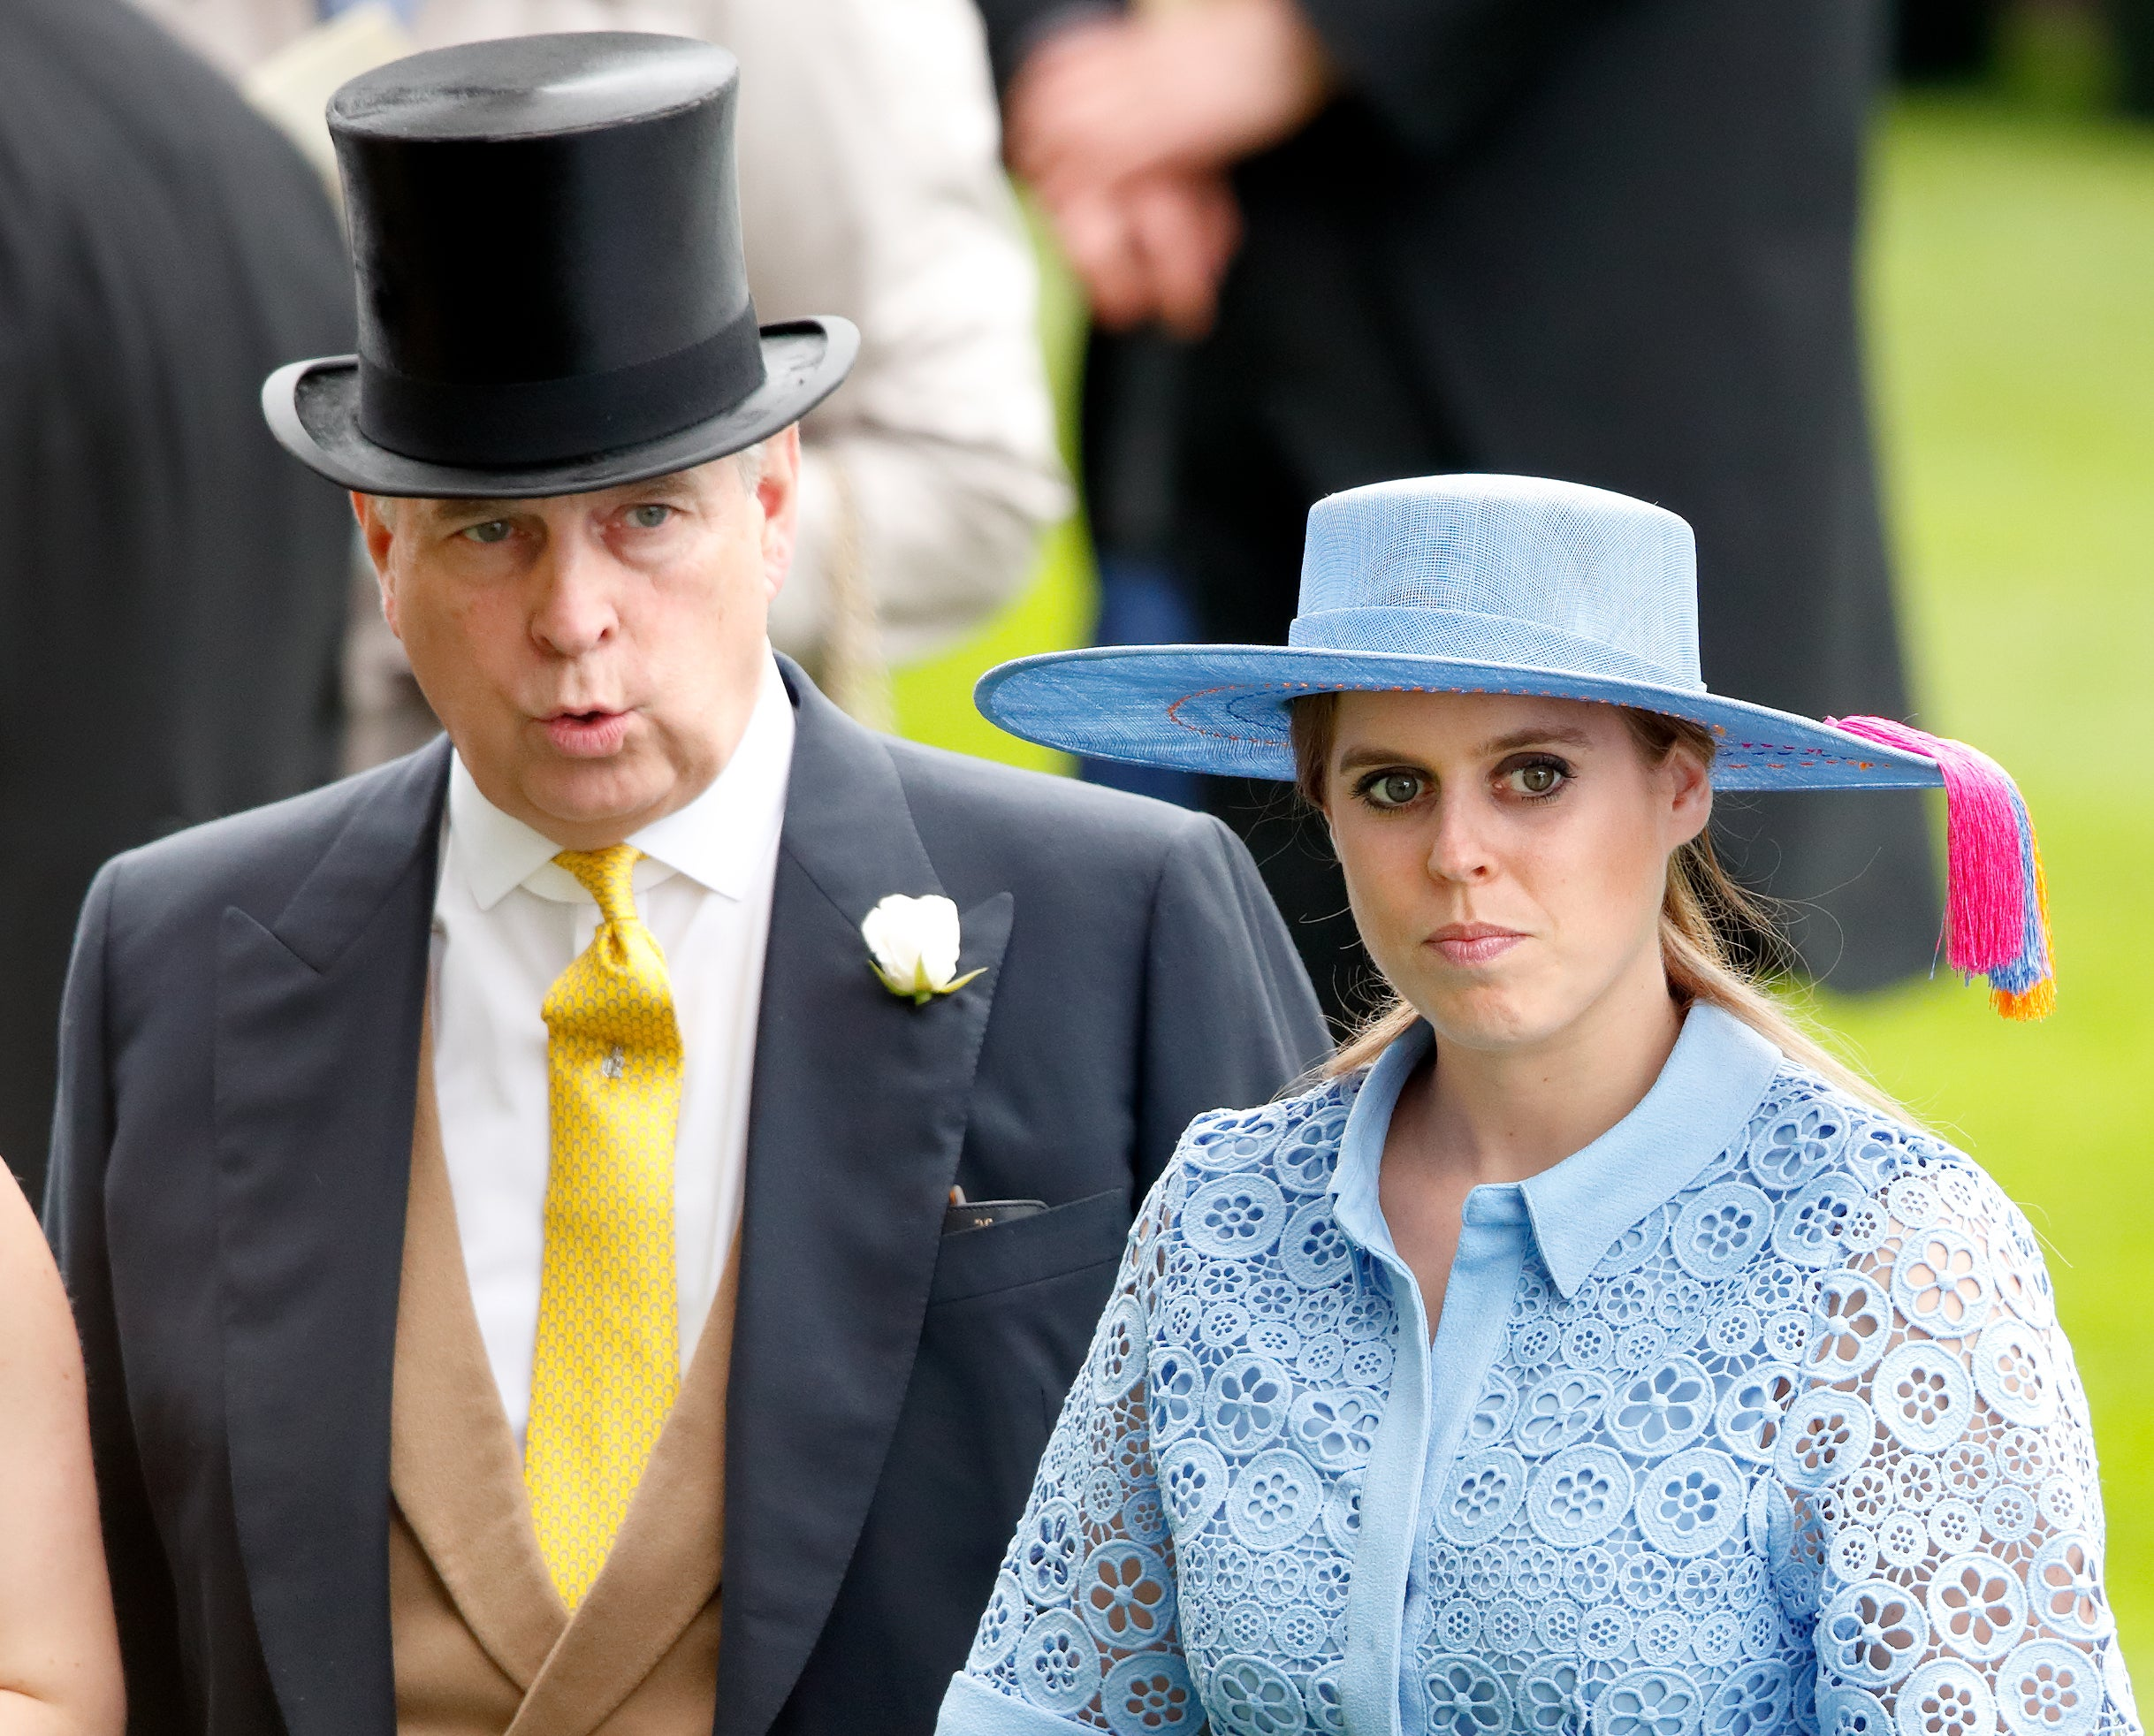 Prince Andrew Still Planning To Walk Daughter Princess Beatrice